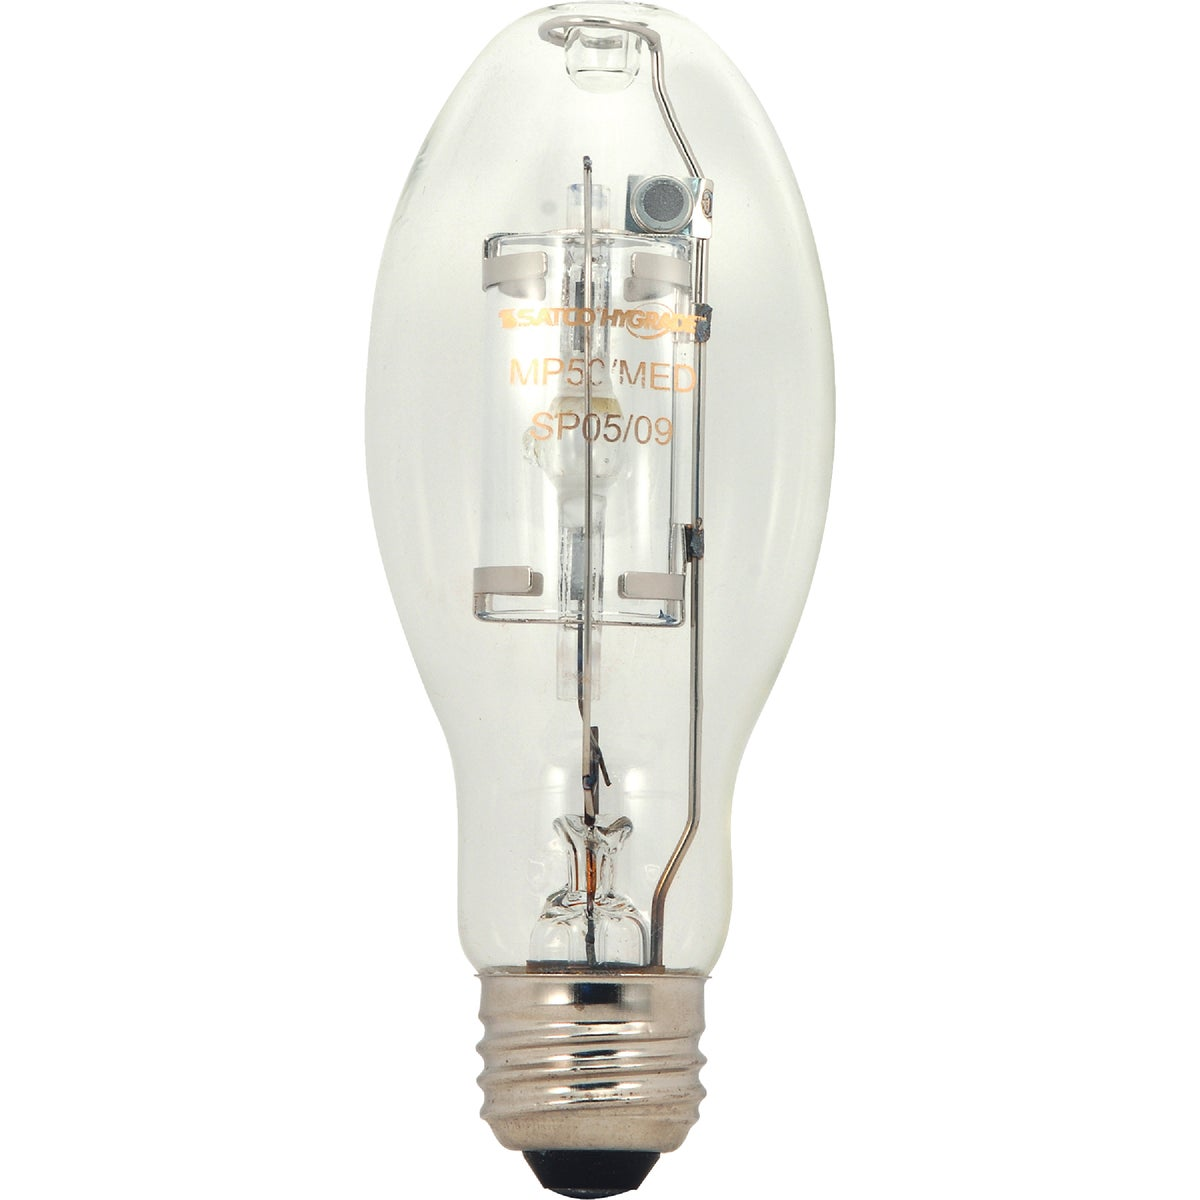 175W METAL HALIDE BULB - 37019 by Westinghouse Lightng